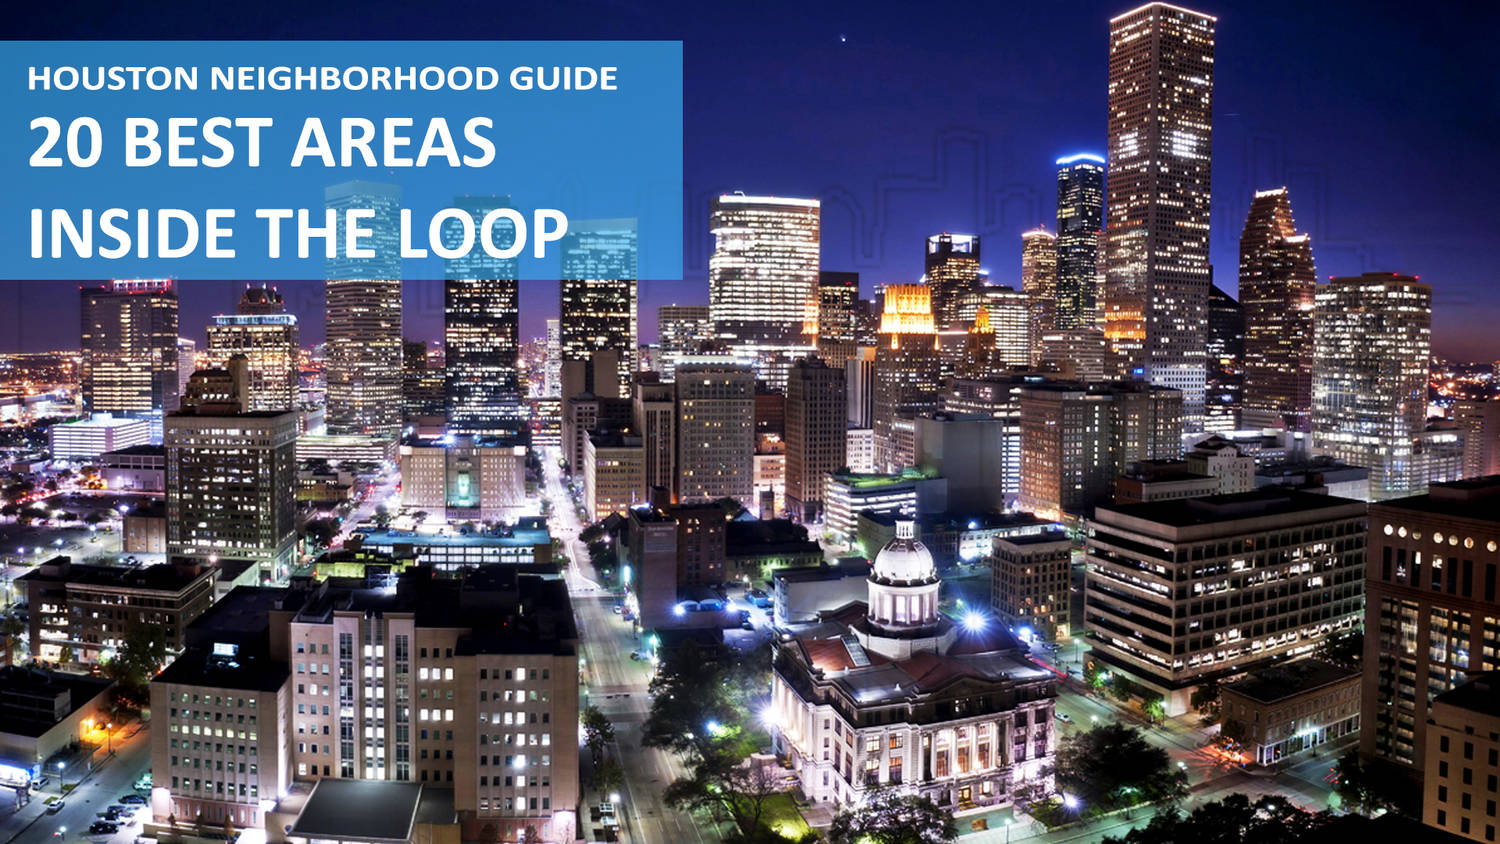 Expert's Guide To The 20 Best Neighborhoods Inside The Loop